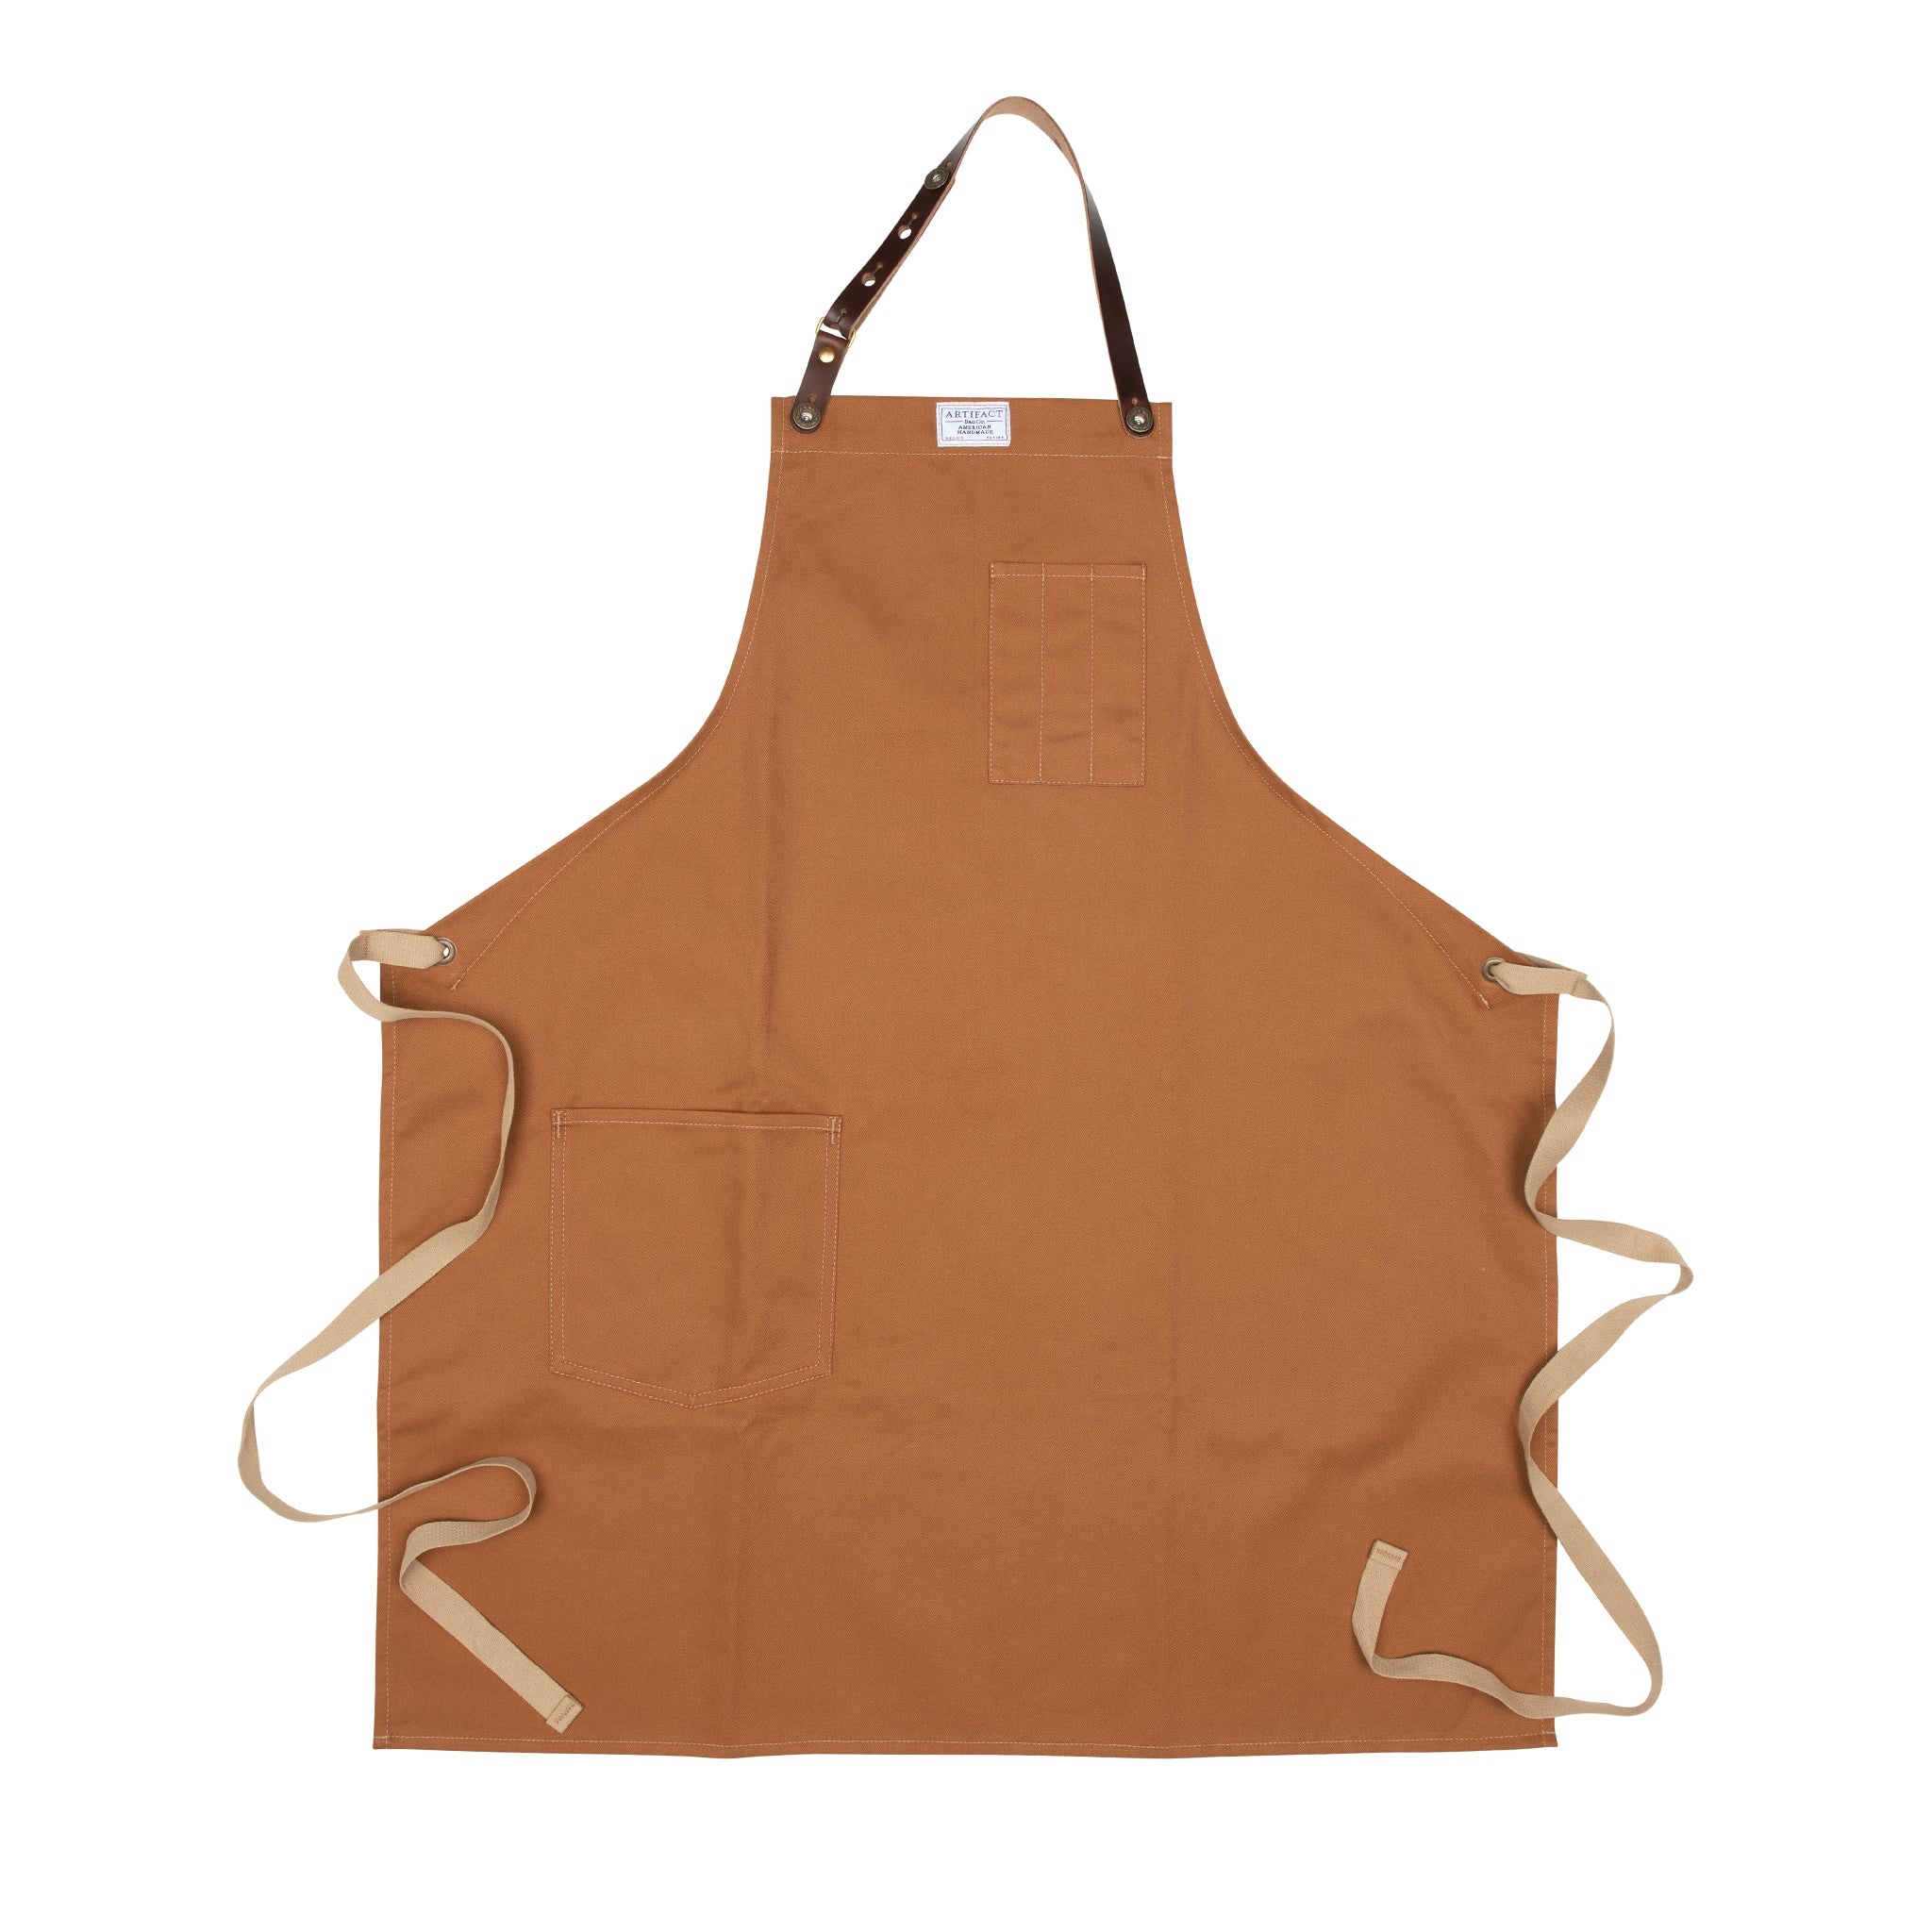 Artifact Copper Brushed Twill Apron w/ Leather Leather Strap - Universal Fit